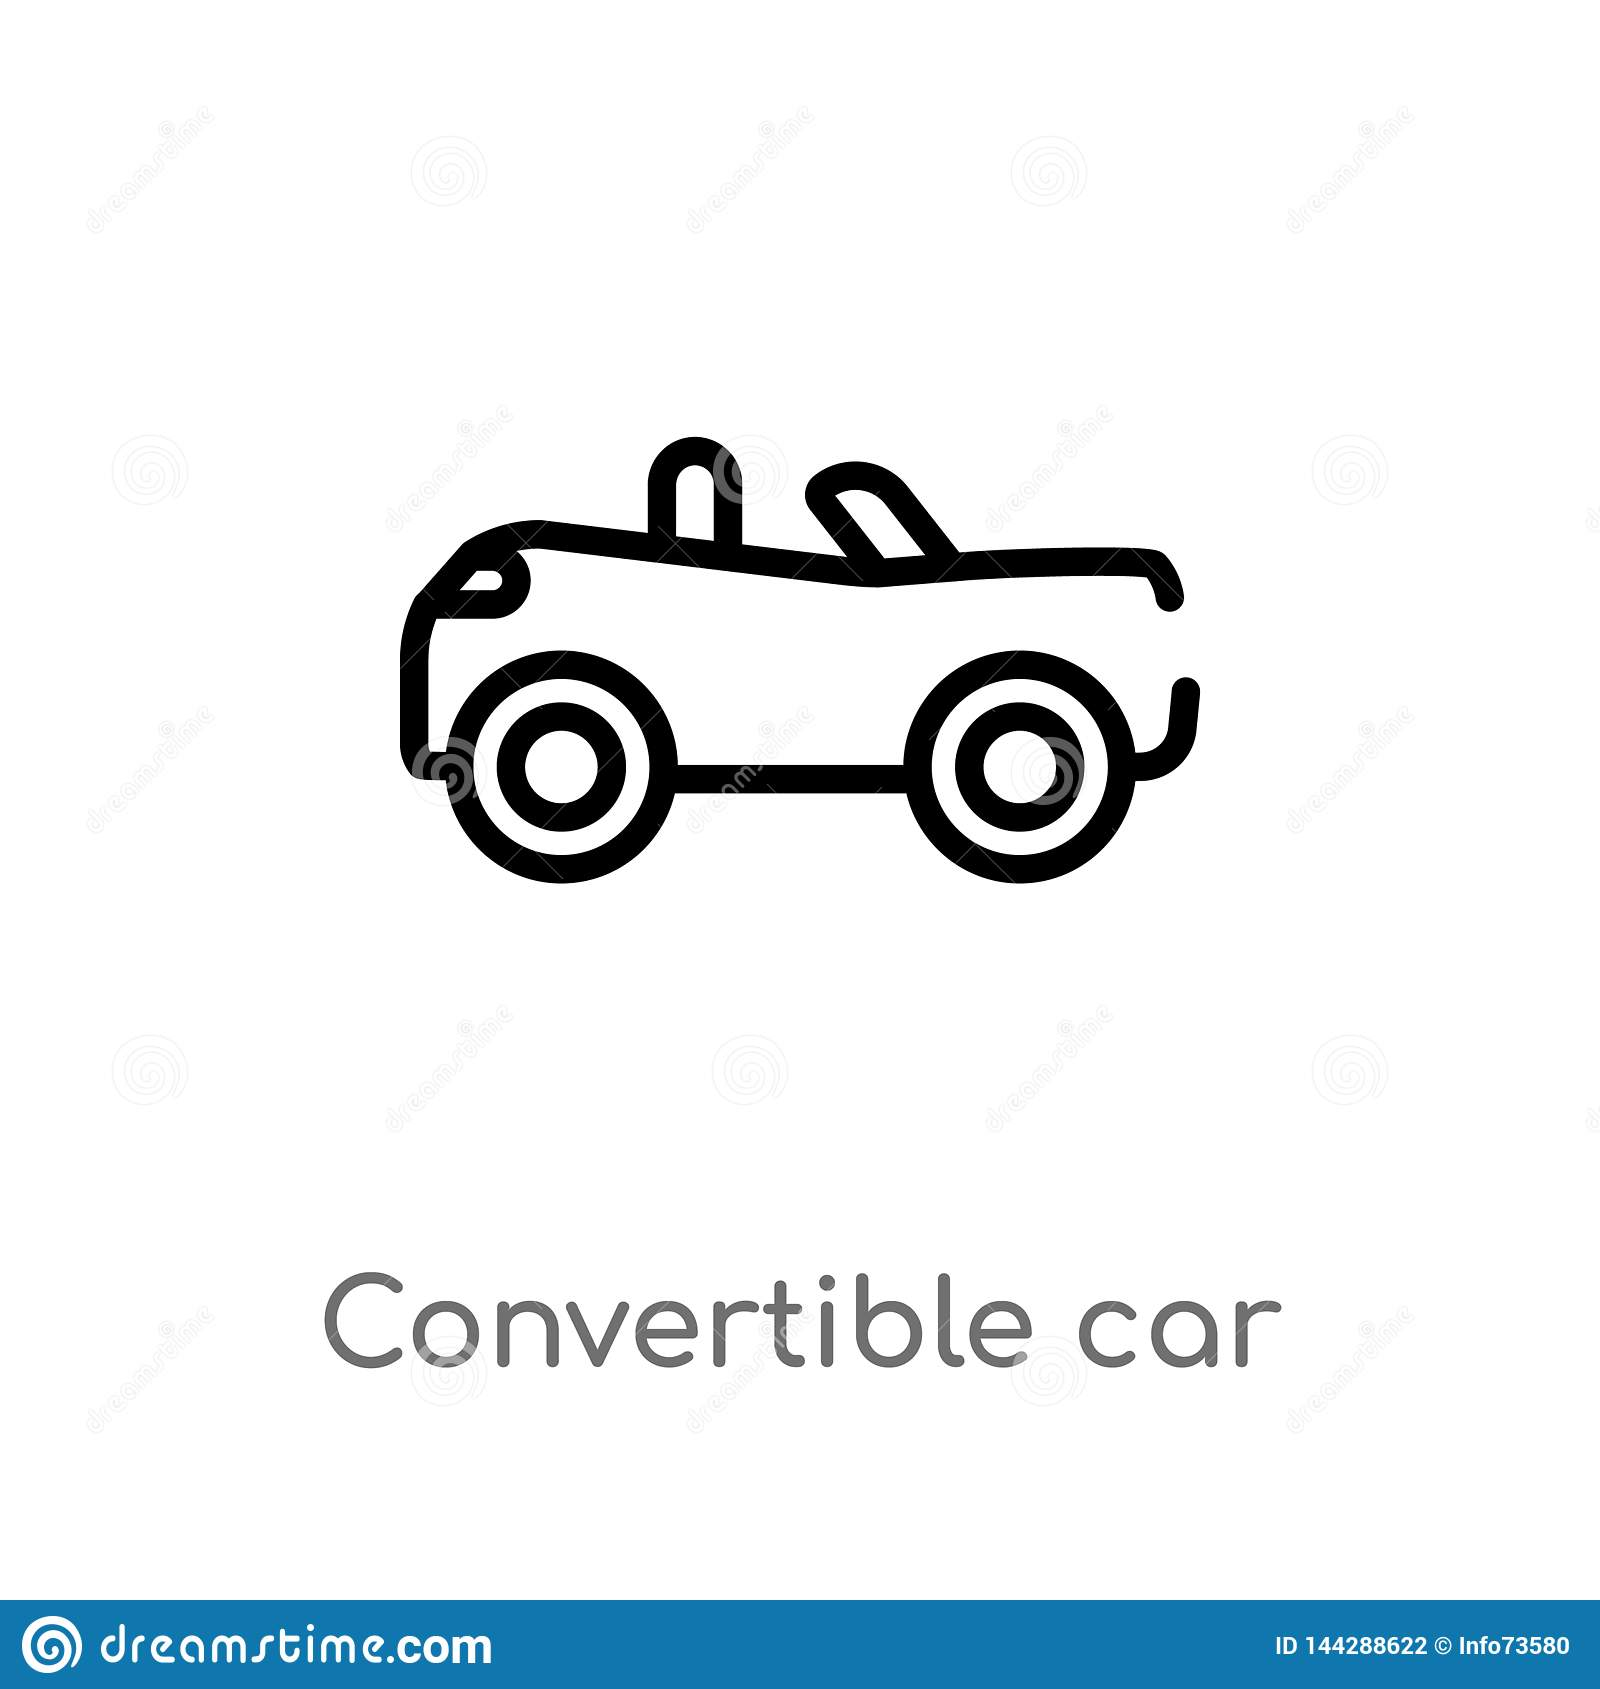 outline convertible car vector icon. isolated black simple line element illustration from mechanicons concept. editable vector